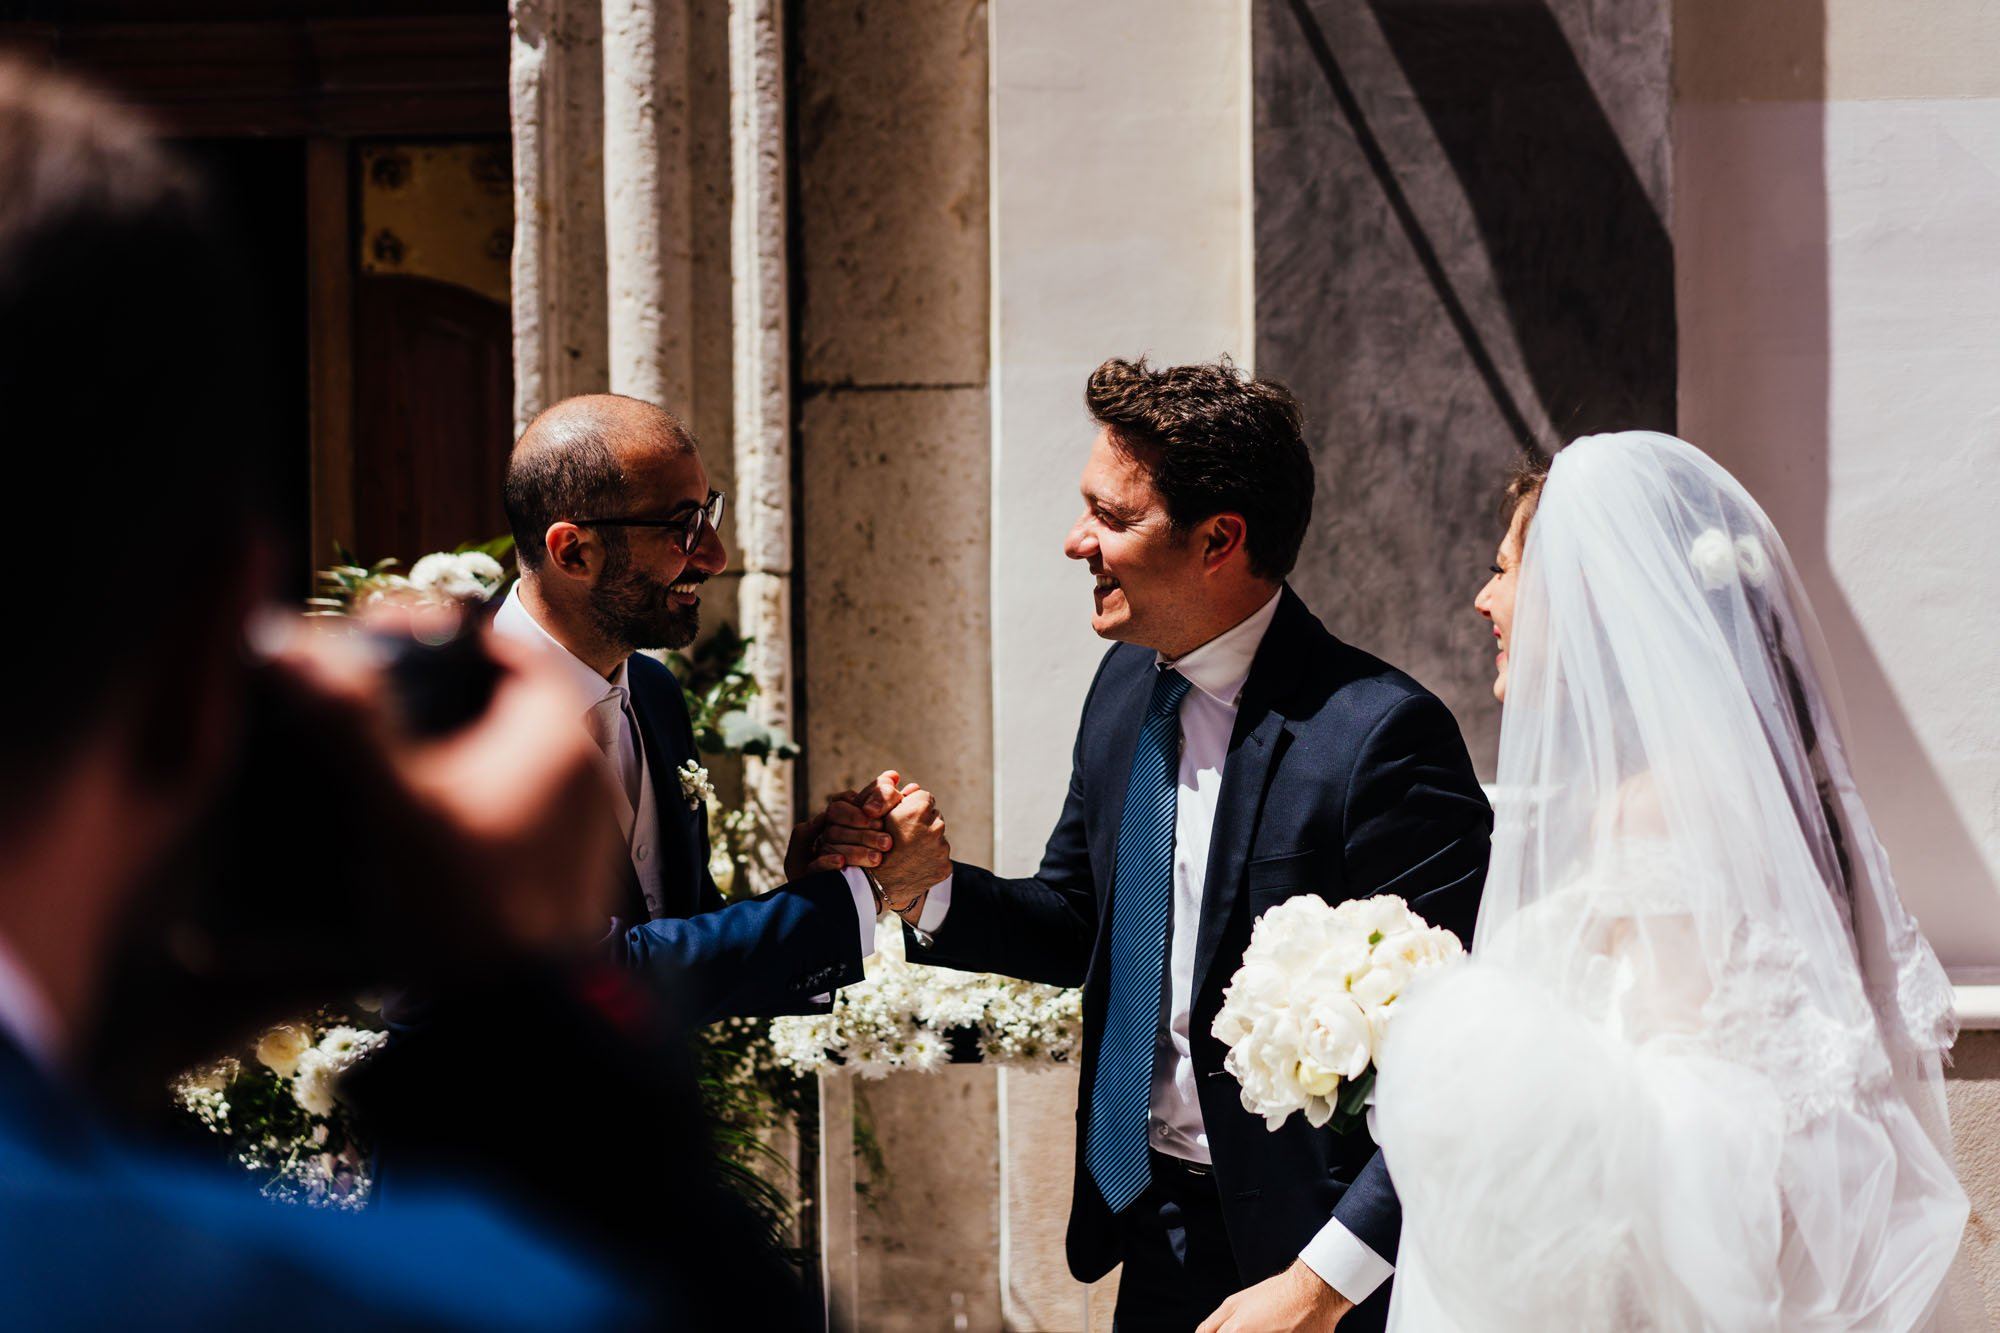 wedding-in-italy-mary-mimmo-35